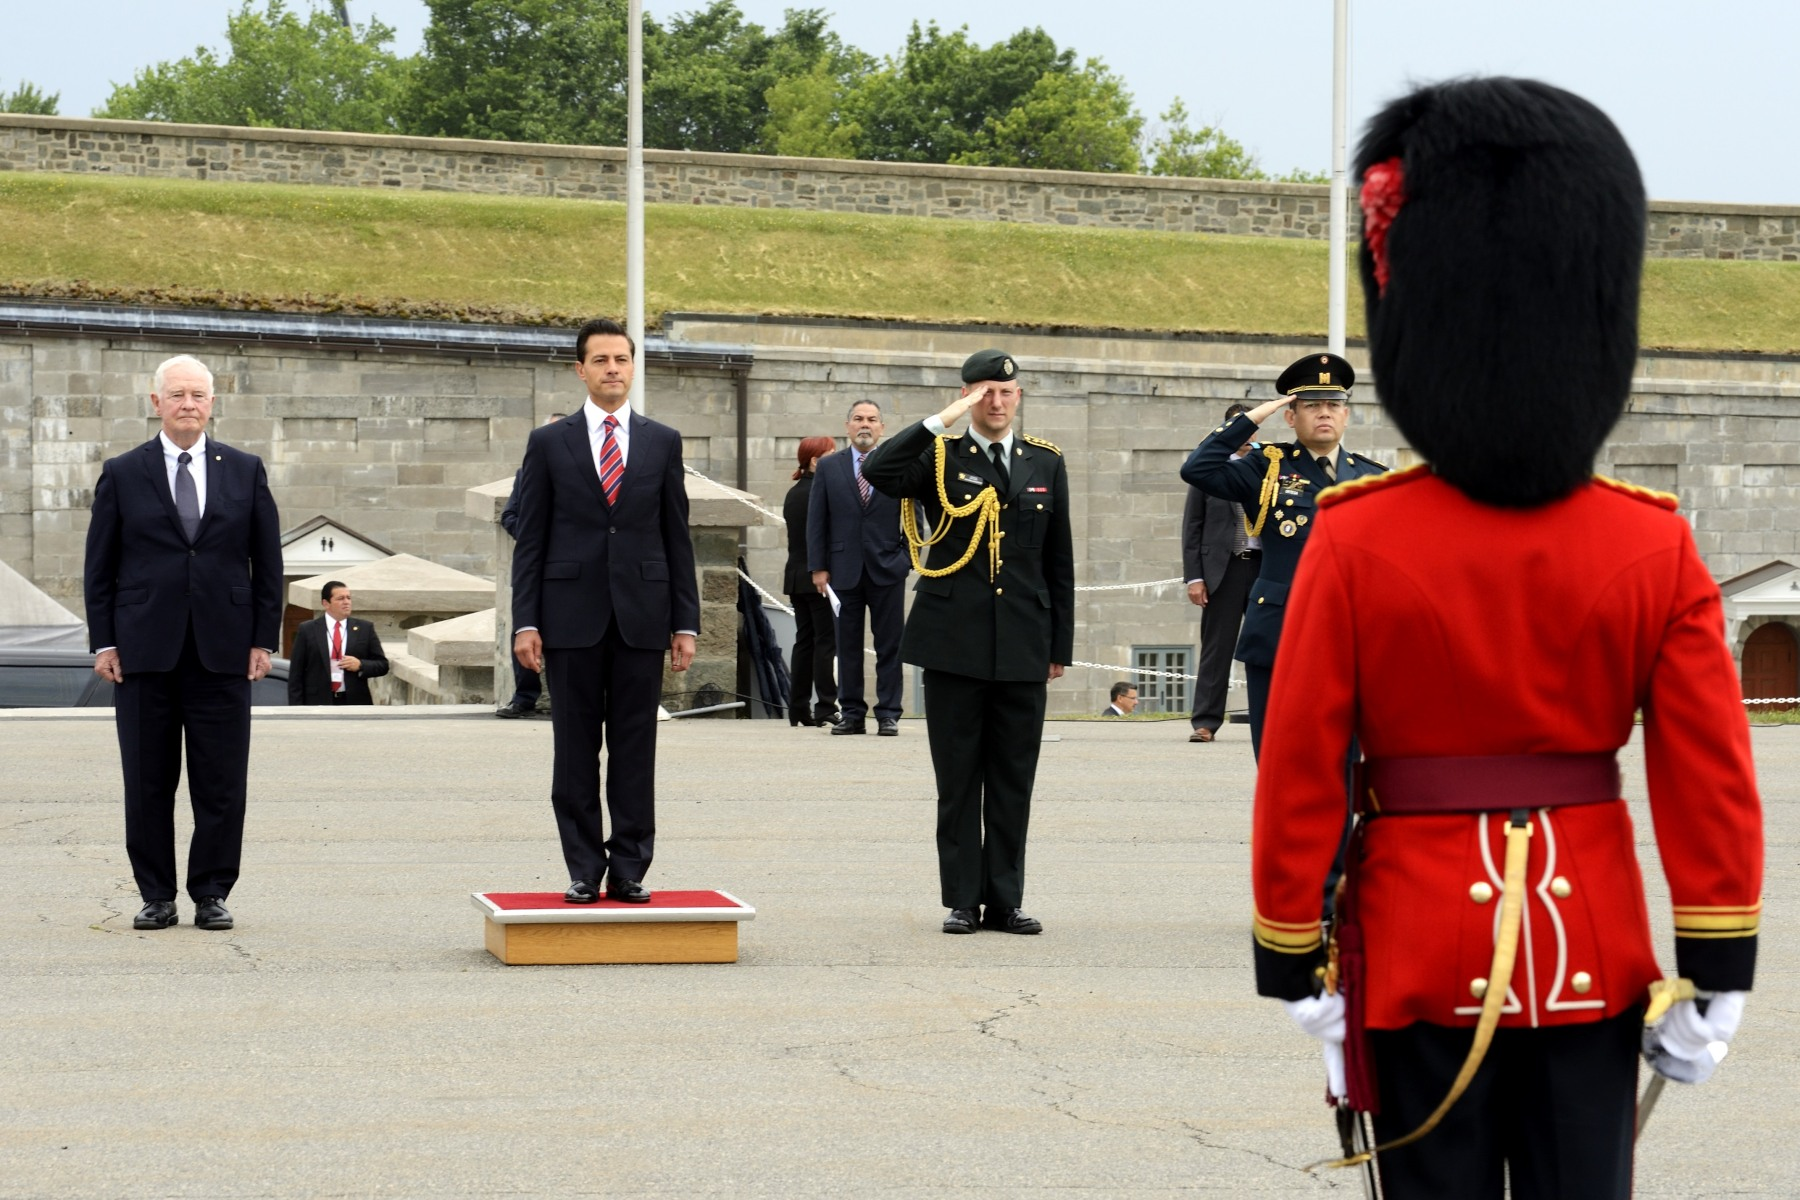 An official welcoming ceremony, with military honours, was held at the residence of the governor general at the Citadelle of Québec.